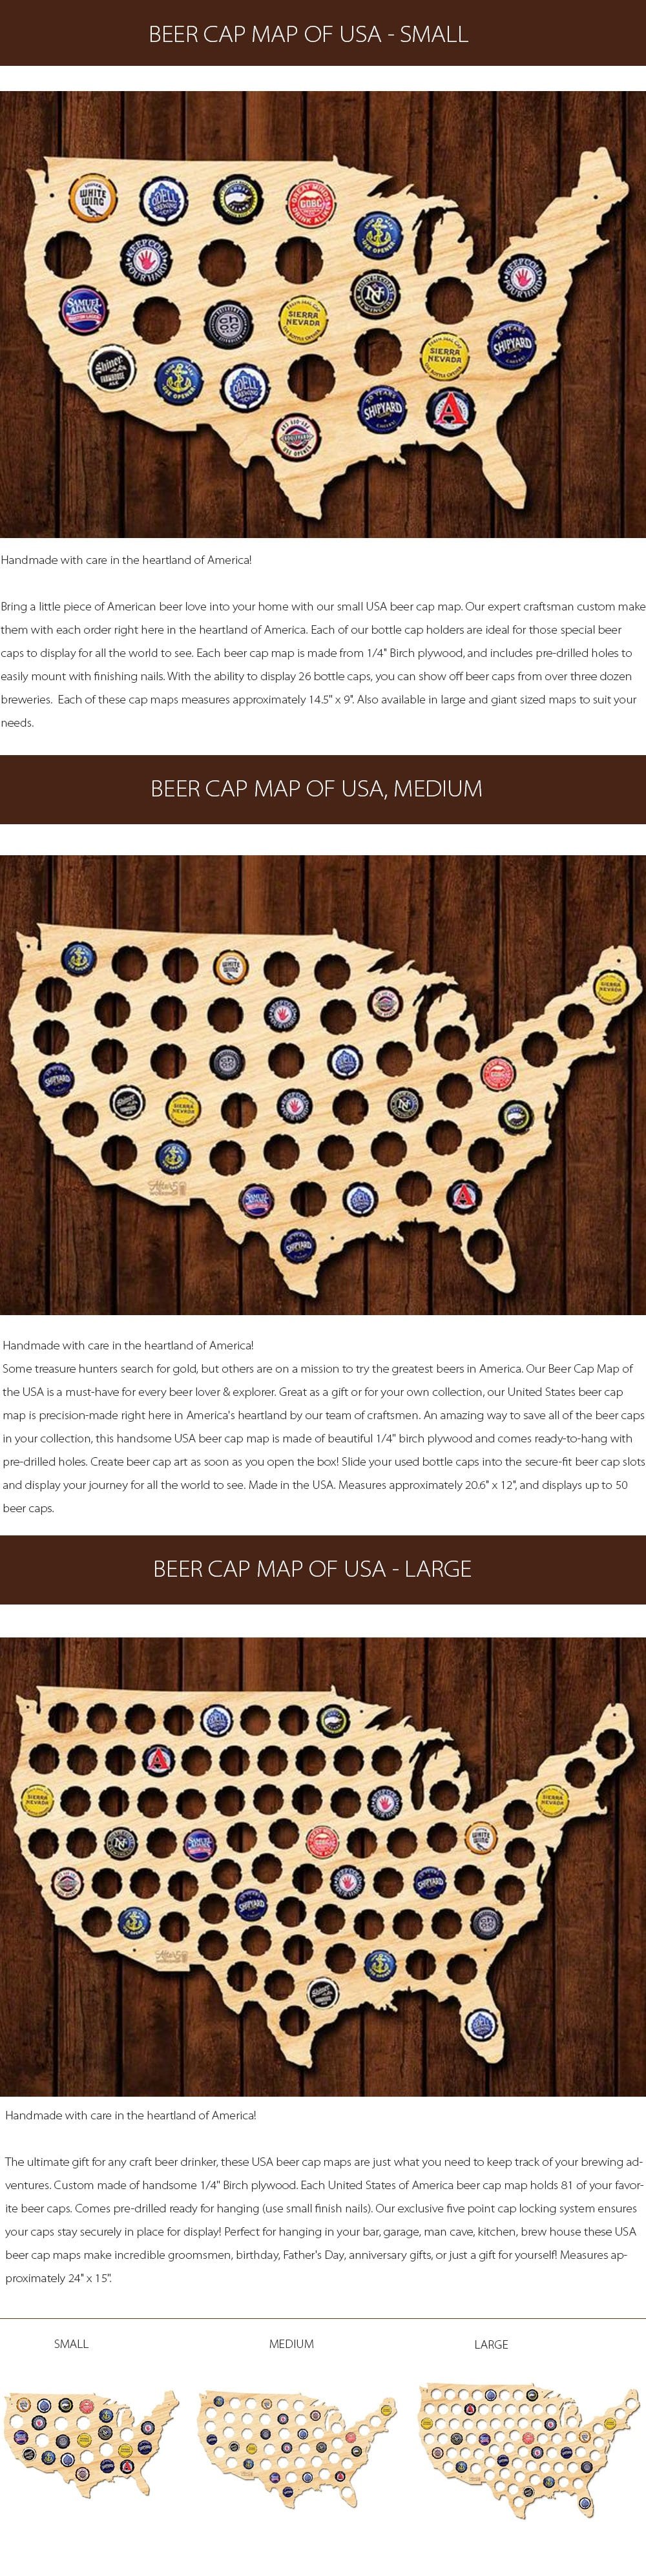 Beer Cap Map Of USA A Must-have For Every Beer Lover & Explorer